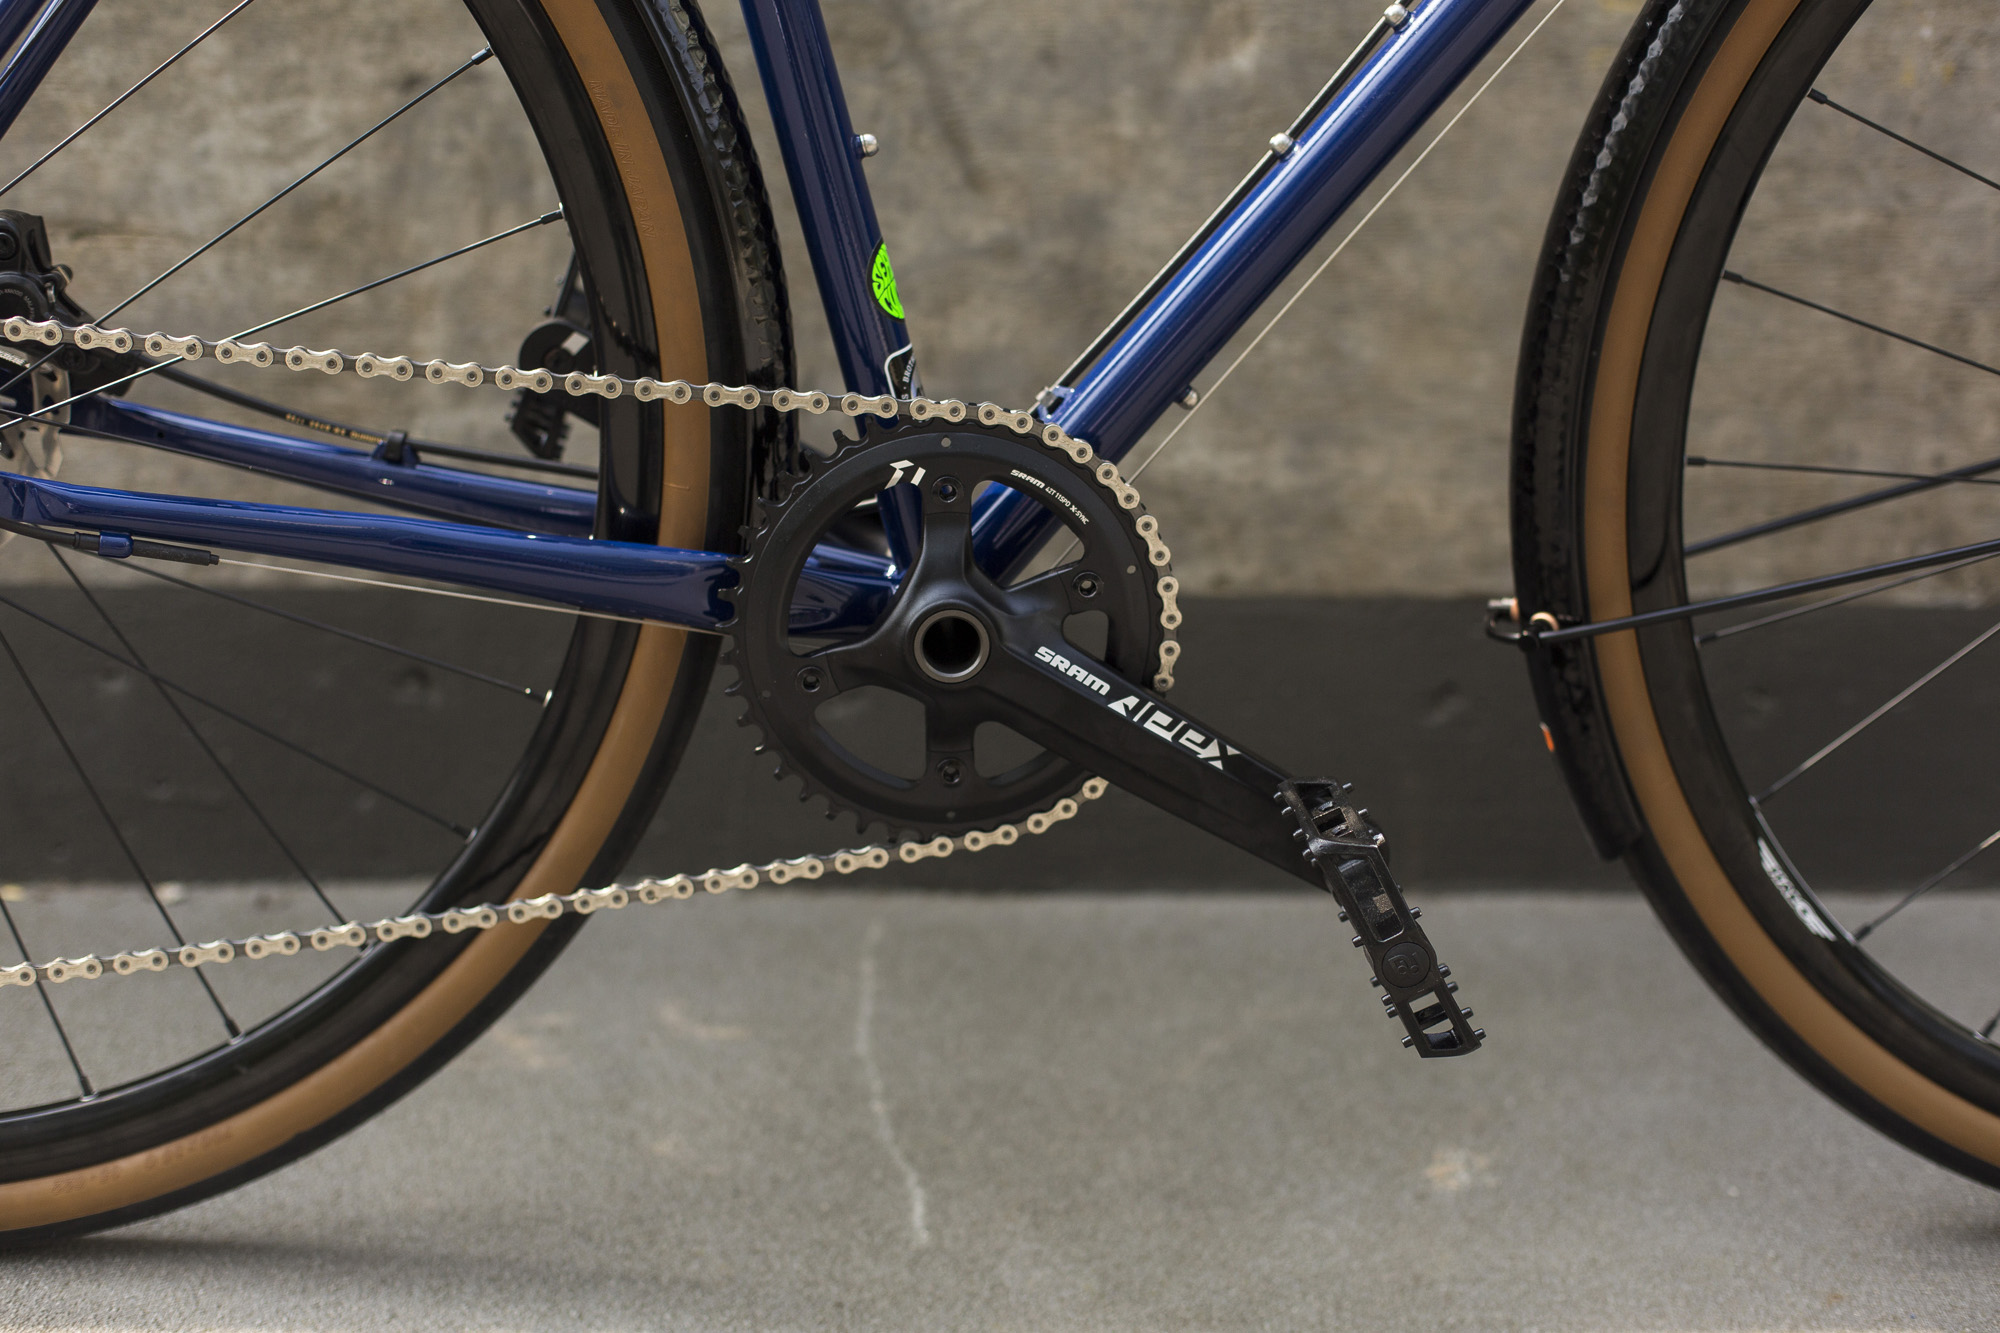 seabass-cycles-instore-bikes-17-april-2019-brother-cycles-kepler-disc-custom-build-midnight-blue-5070.jpg